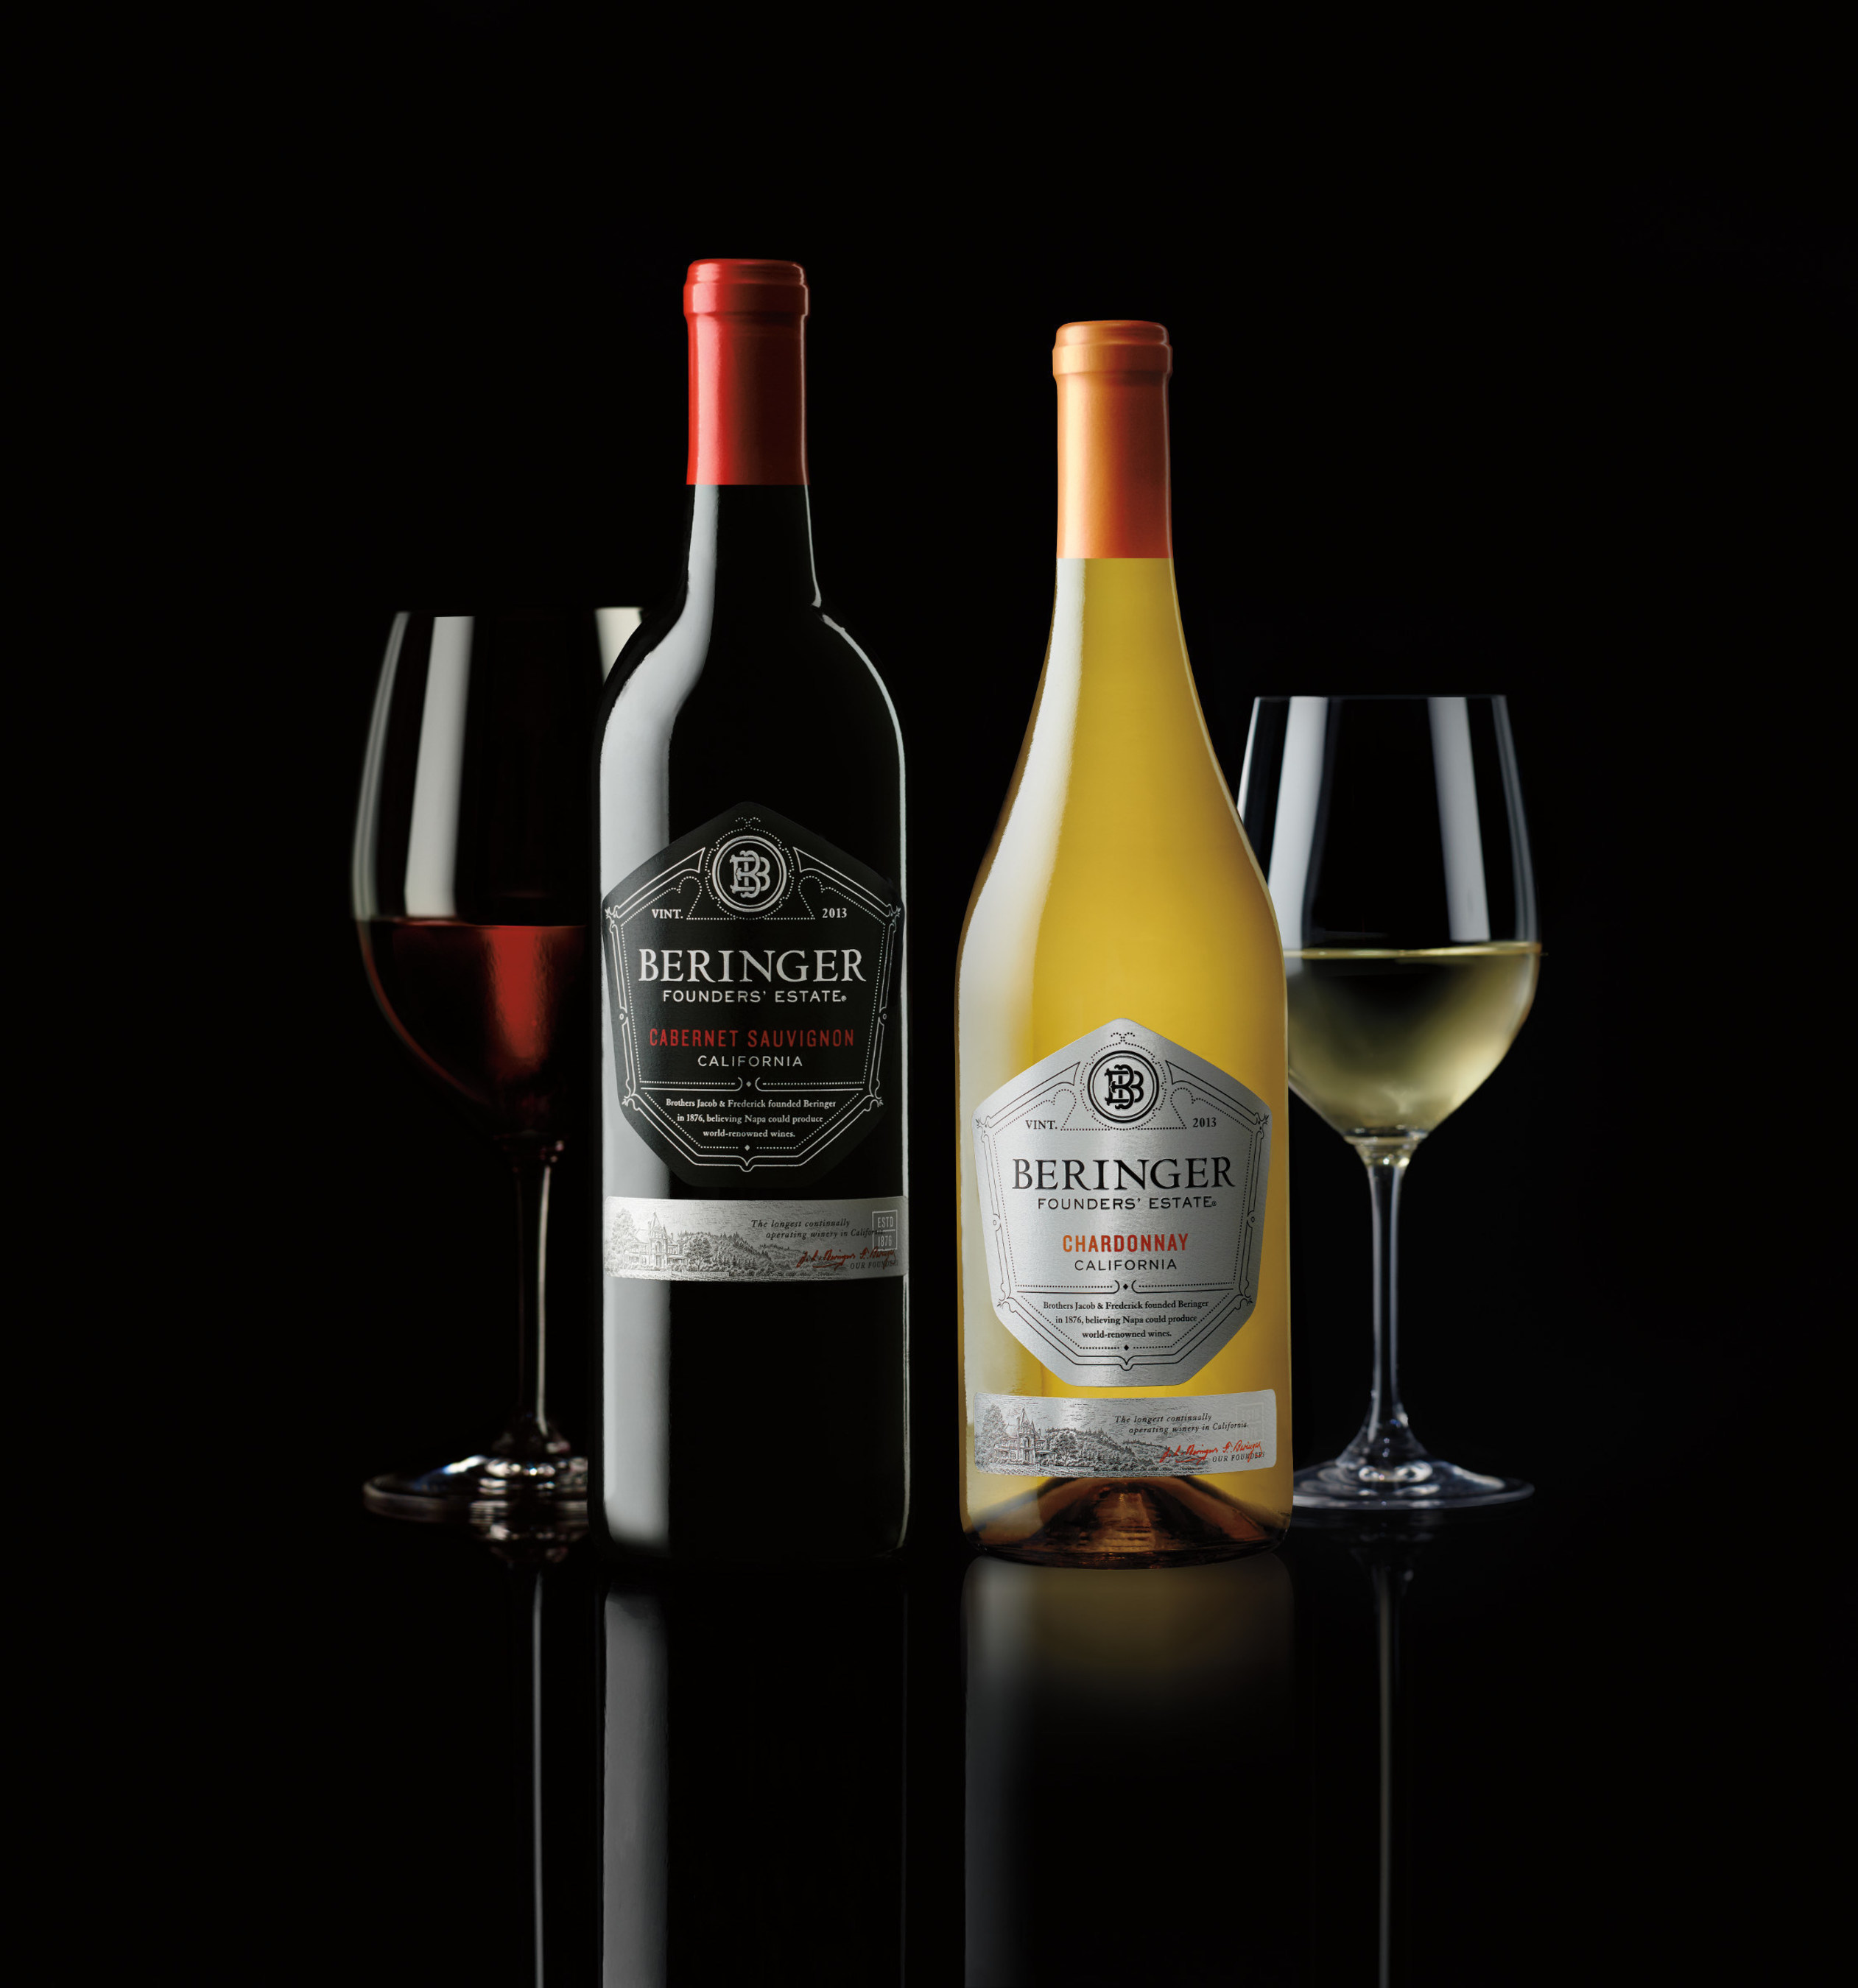 Beringer Founders' Estate Cabernet Sauvignon and Chardonnay.